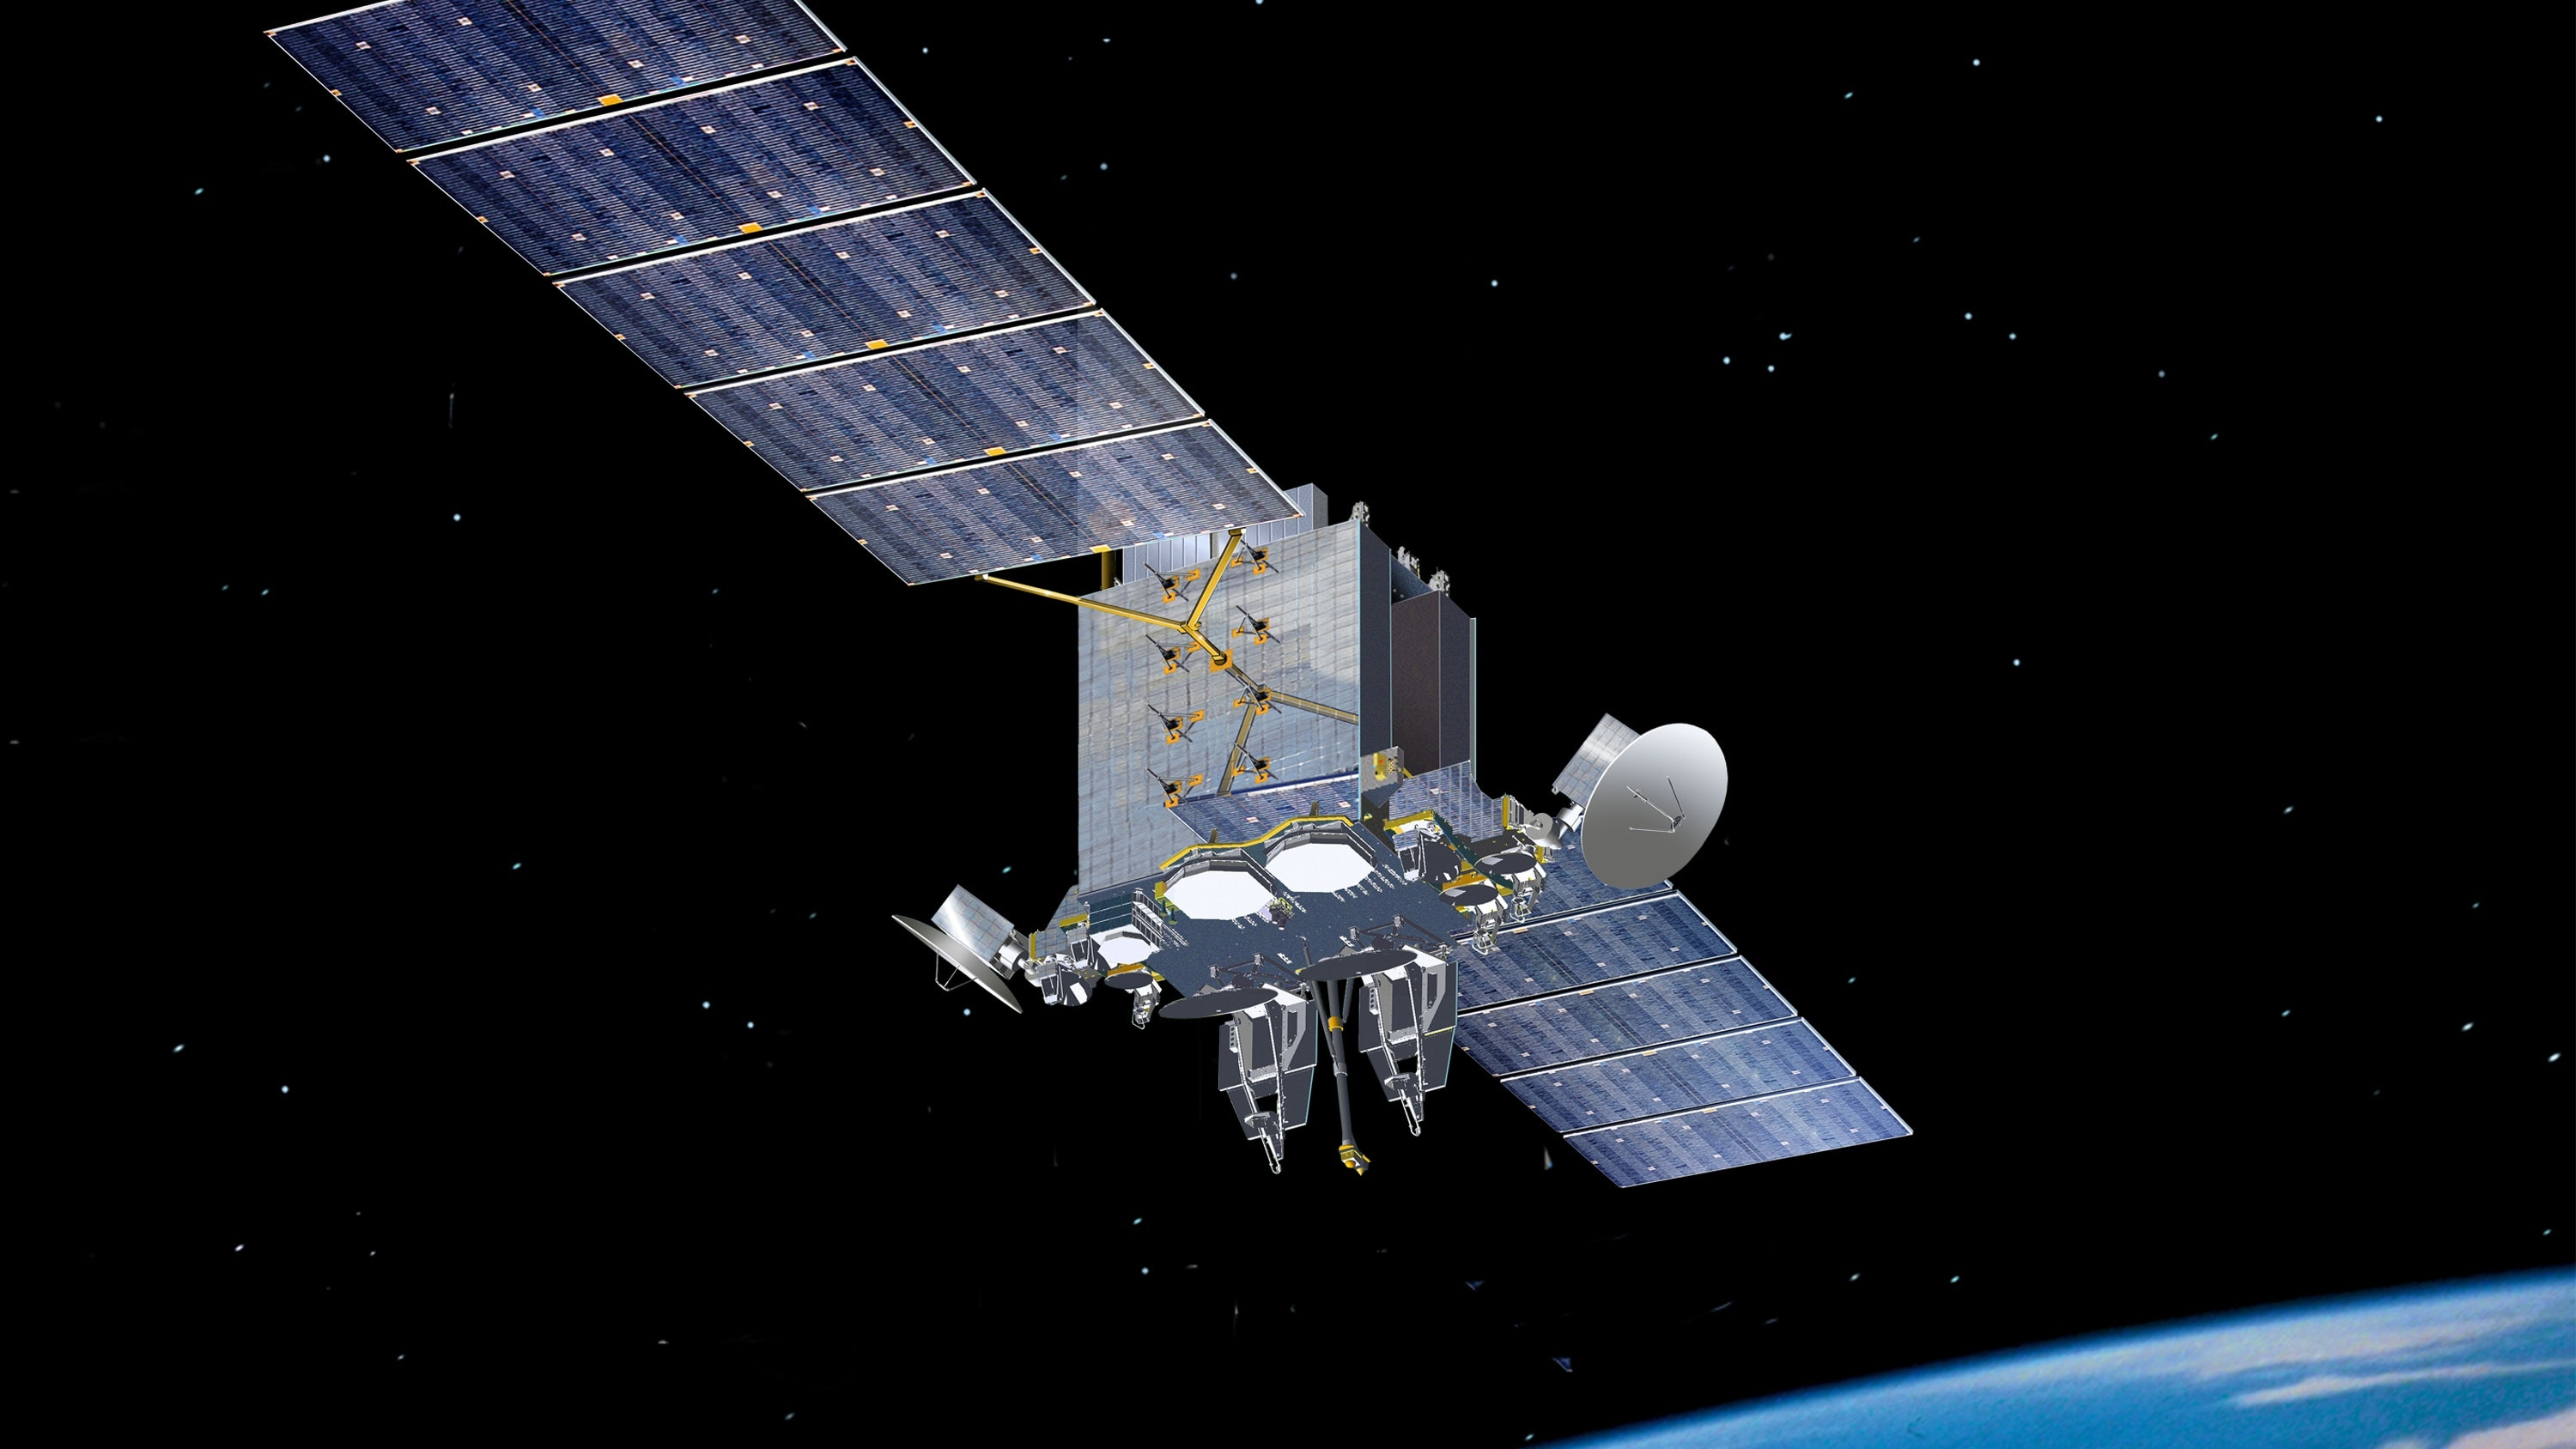 The Advanced Extremely High Frequency satellite system is intended to replace the MILSTAR constellation in providing protected, anti-jamming satellite communications to high-priority United States military assets and its international partners in Canada, United Kingdom, Netherlands and Australia. (Lockheed Martin)